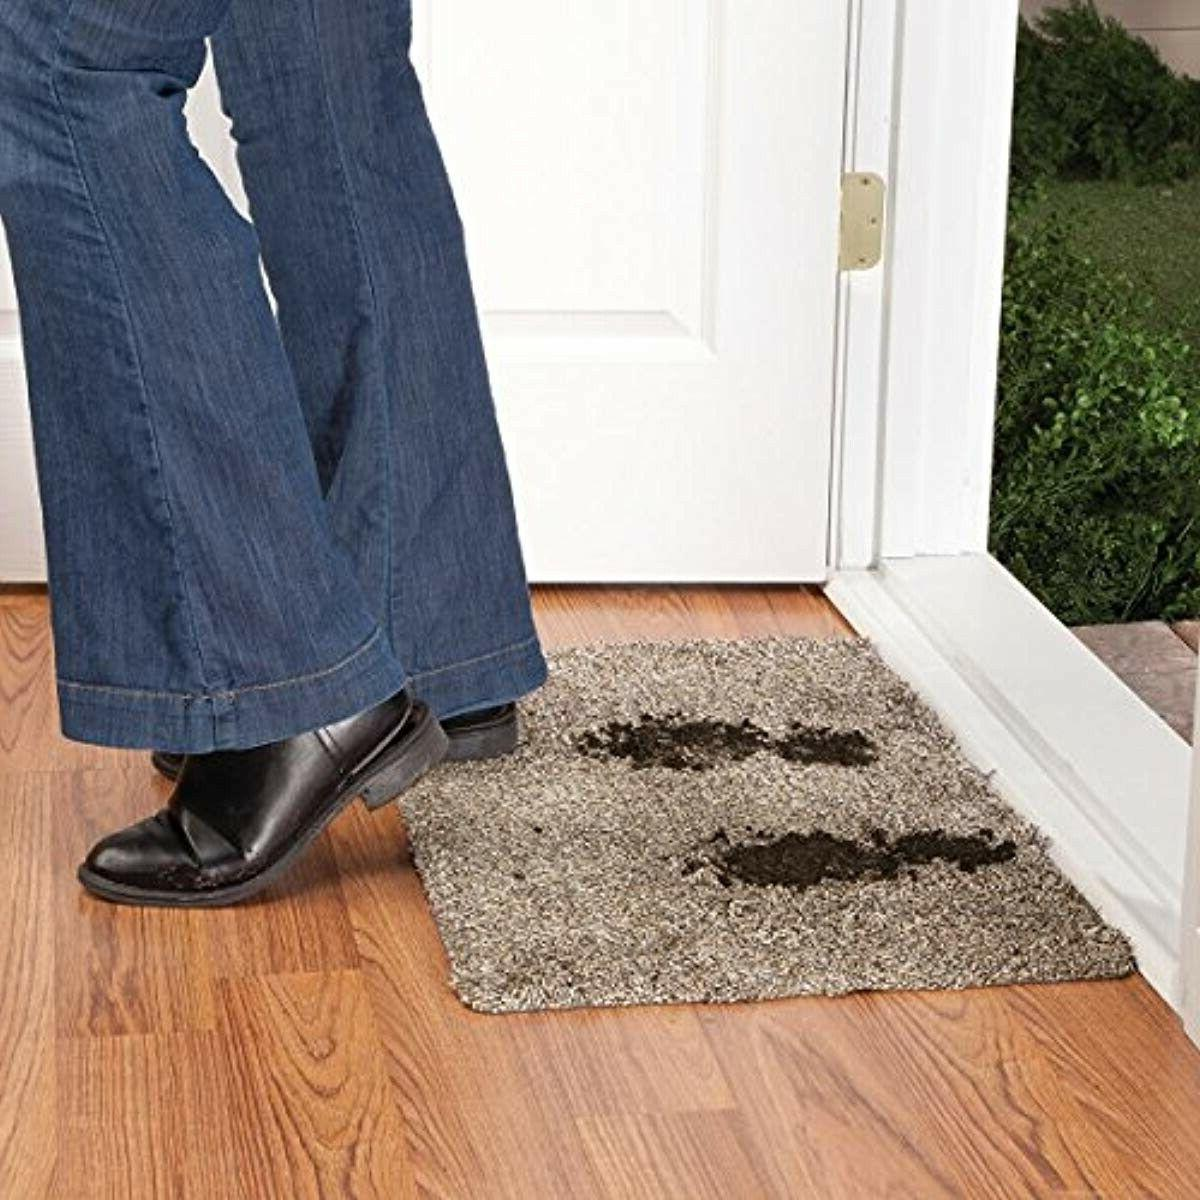 Step Dirt Heavy Duty Doormat Entrance